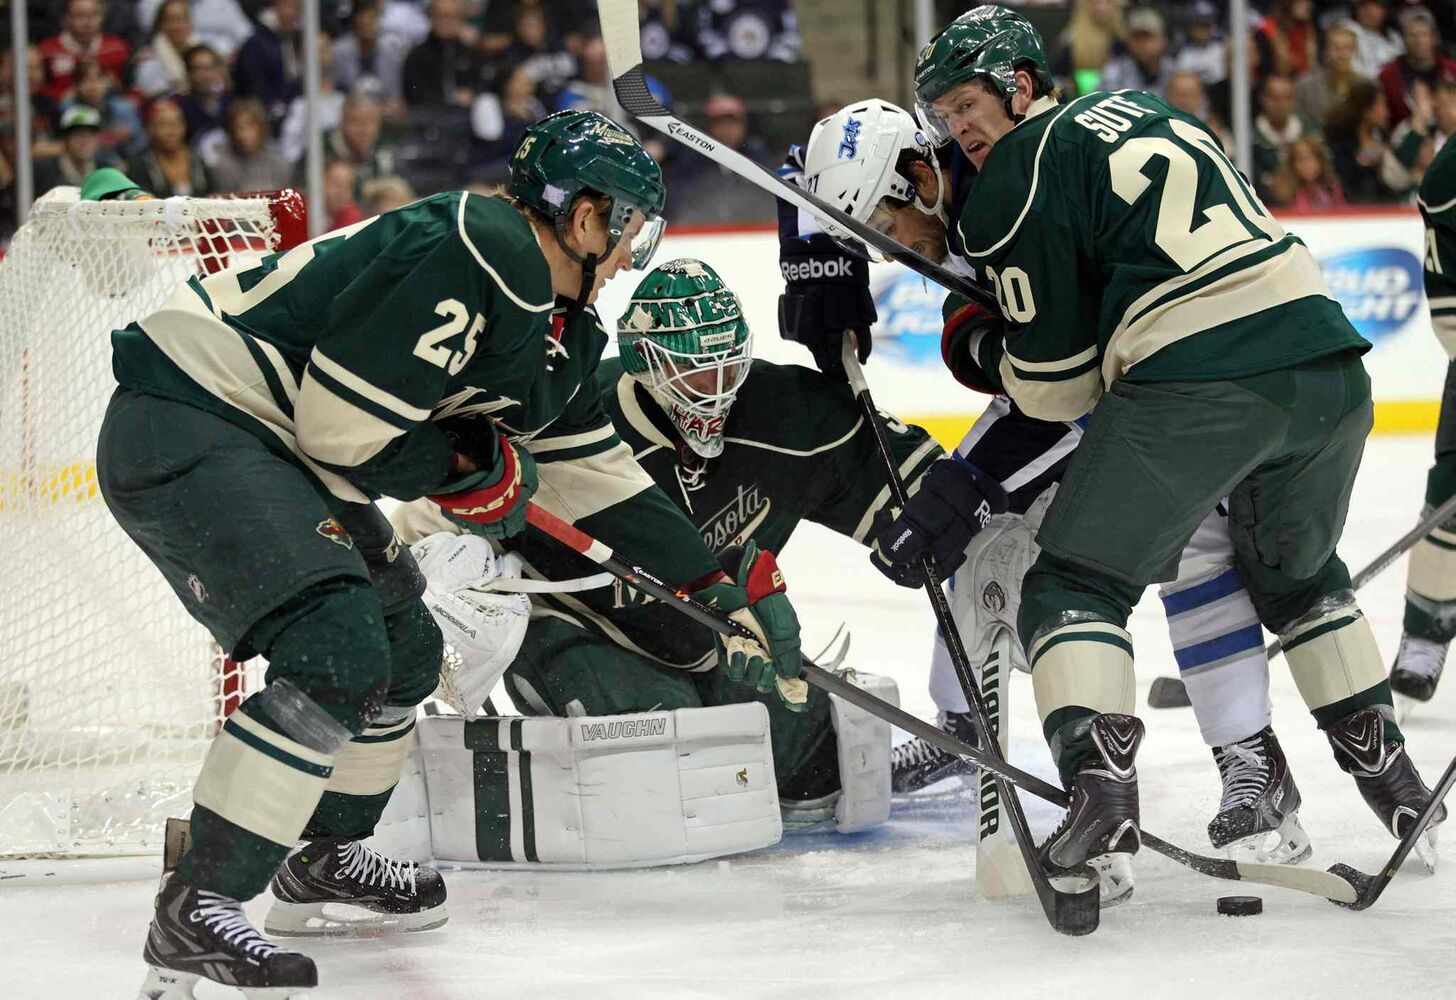 Minnesota Wild defencemen Jonas Brodin (left) and Ryan Suter (right) protect goaltender Josh Harding as Winnipeg Jets winger Eric Tangradi battles for the puck in the first period at the Xcel Energy Center Thursday night. The Jets lost 2-1. (JESSE JOHNSON / USA TODAY SPORTS / REUTERS)